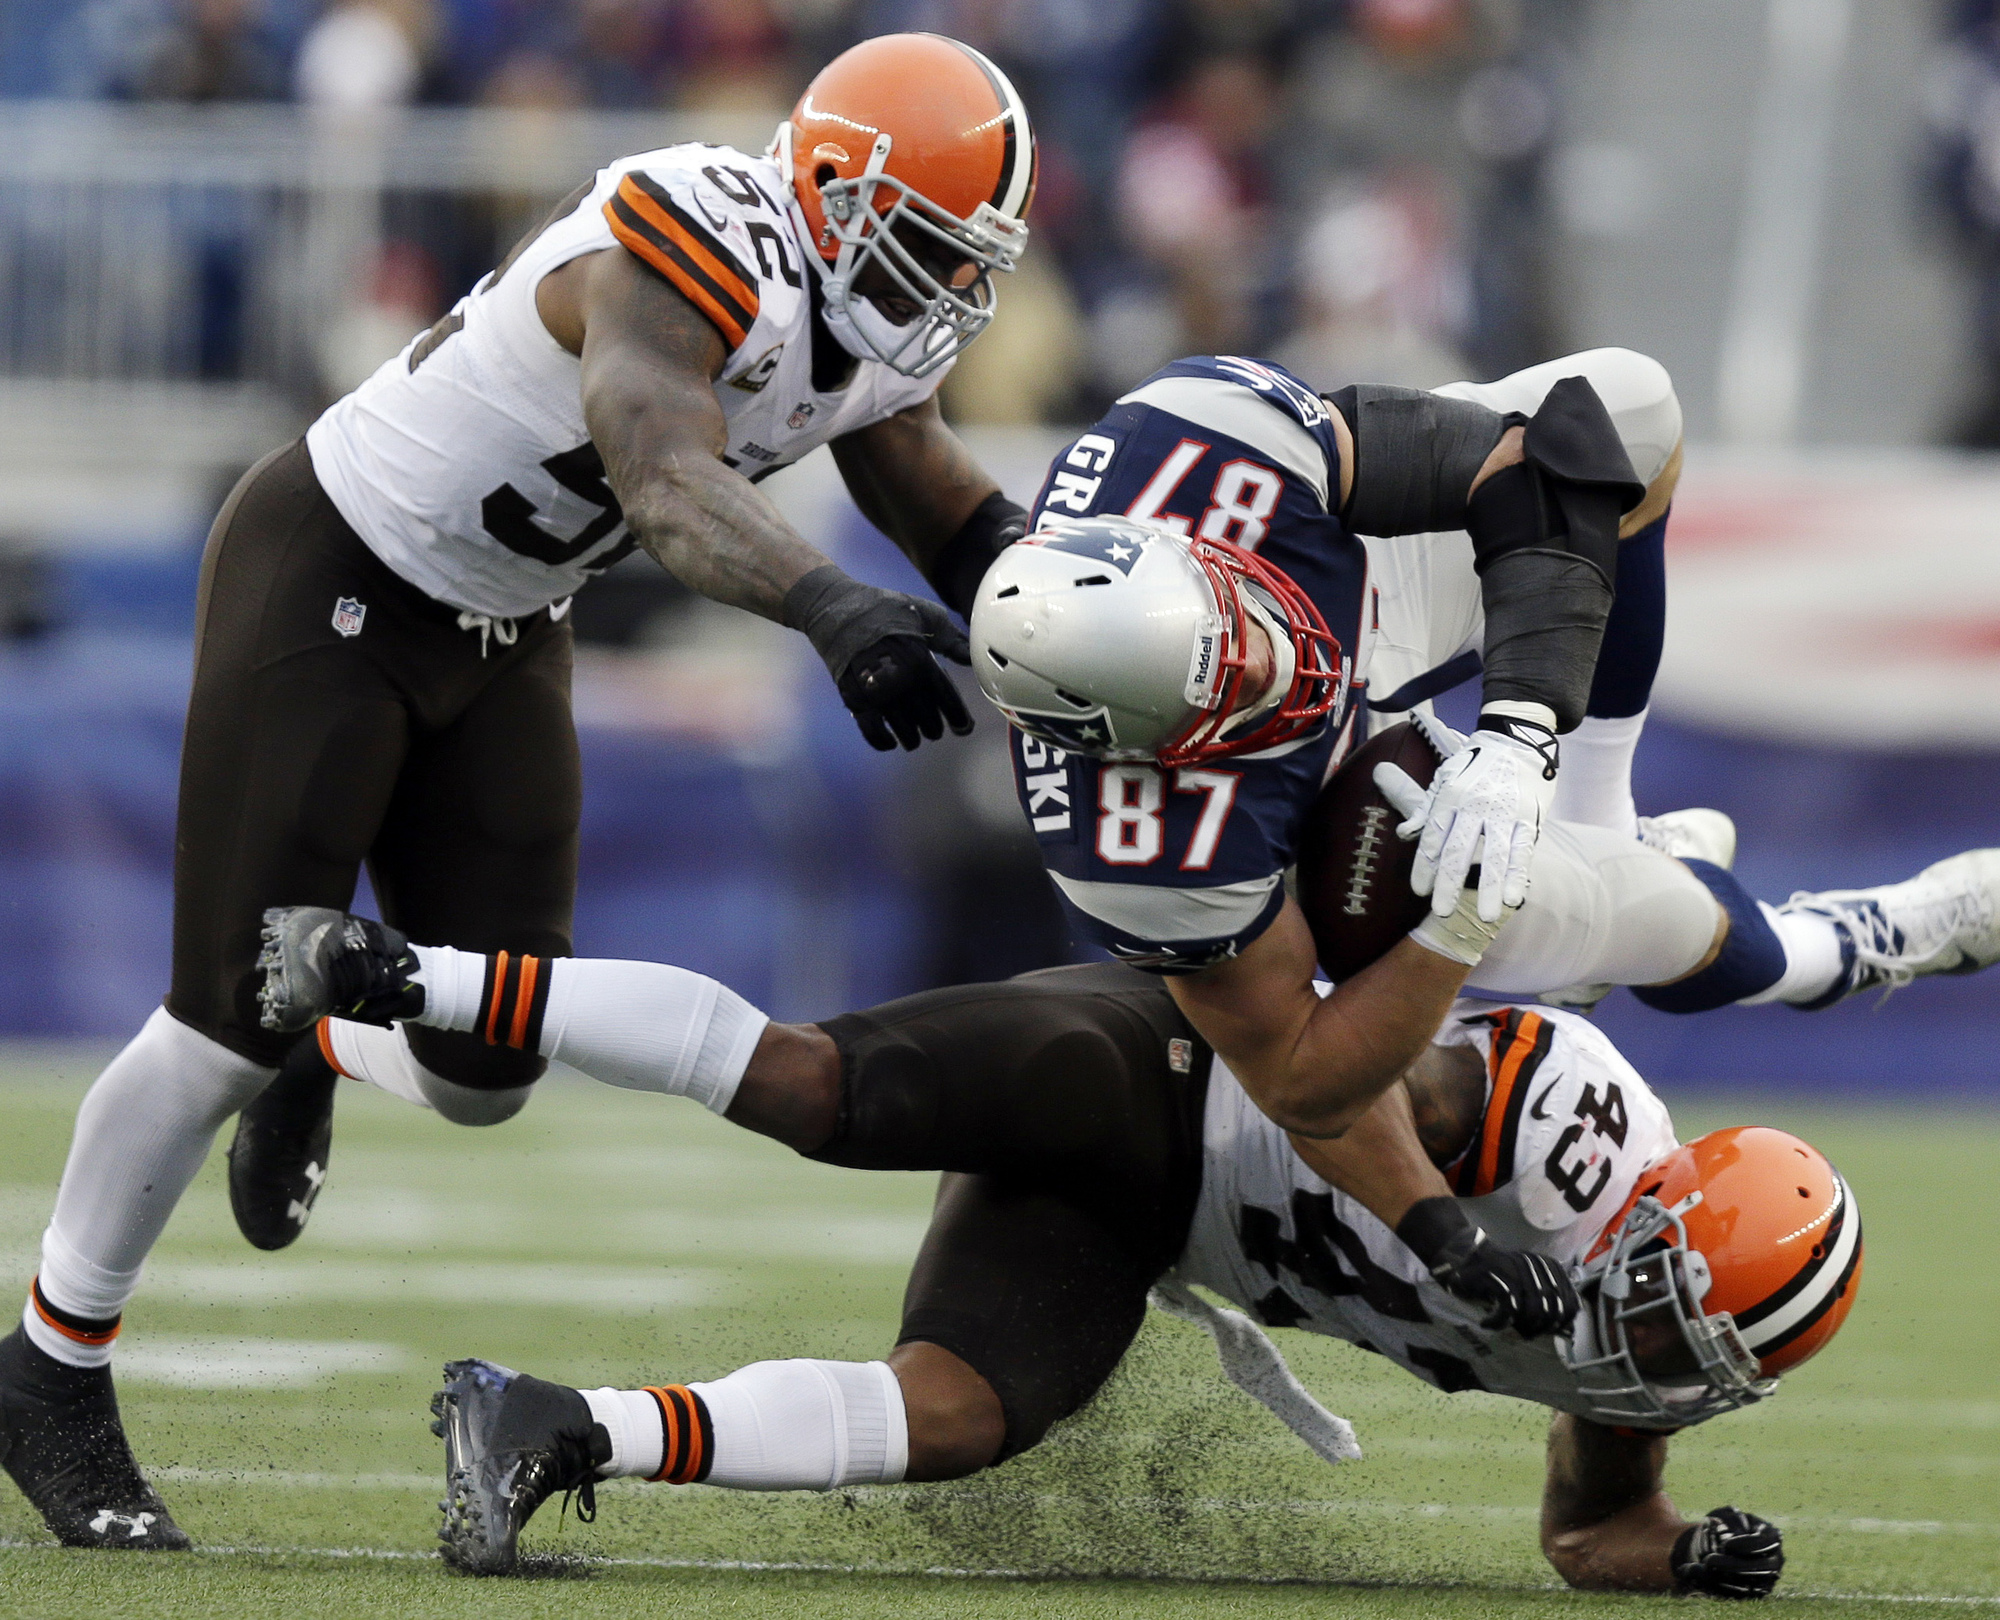 football is a dangerous sport Many nfl football players will have permanent brain damage from repeated concussions and head injuries in conclusion, football is a dangerous sport where concussions are very common and can lead to brain damage.